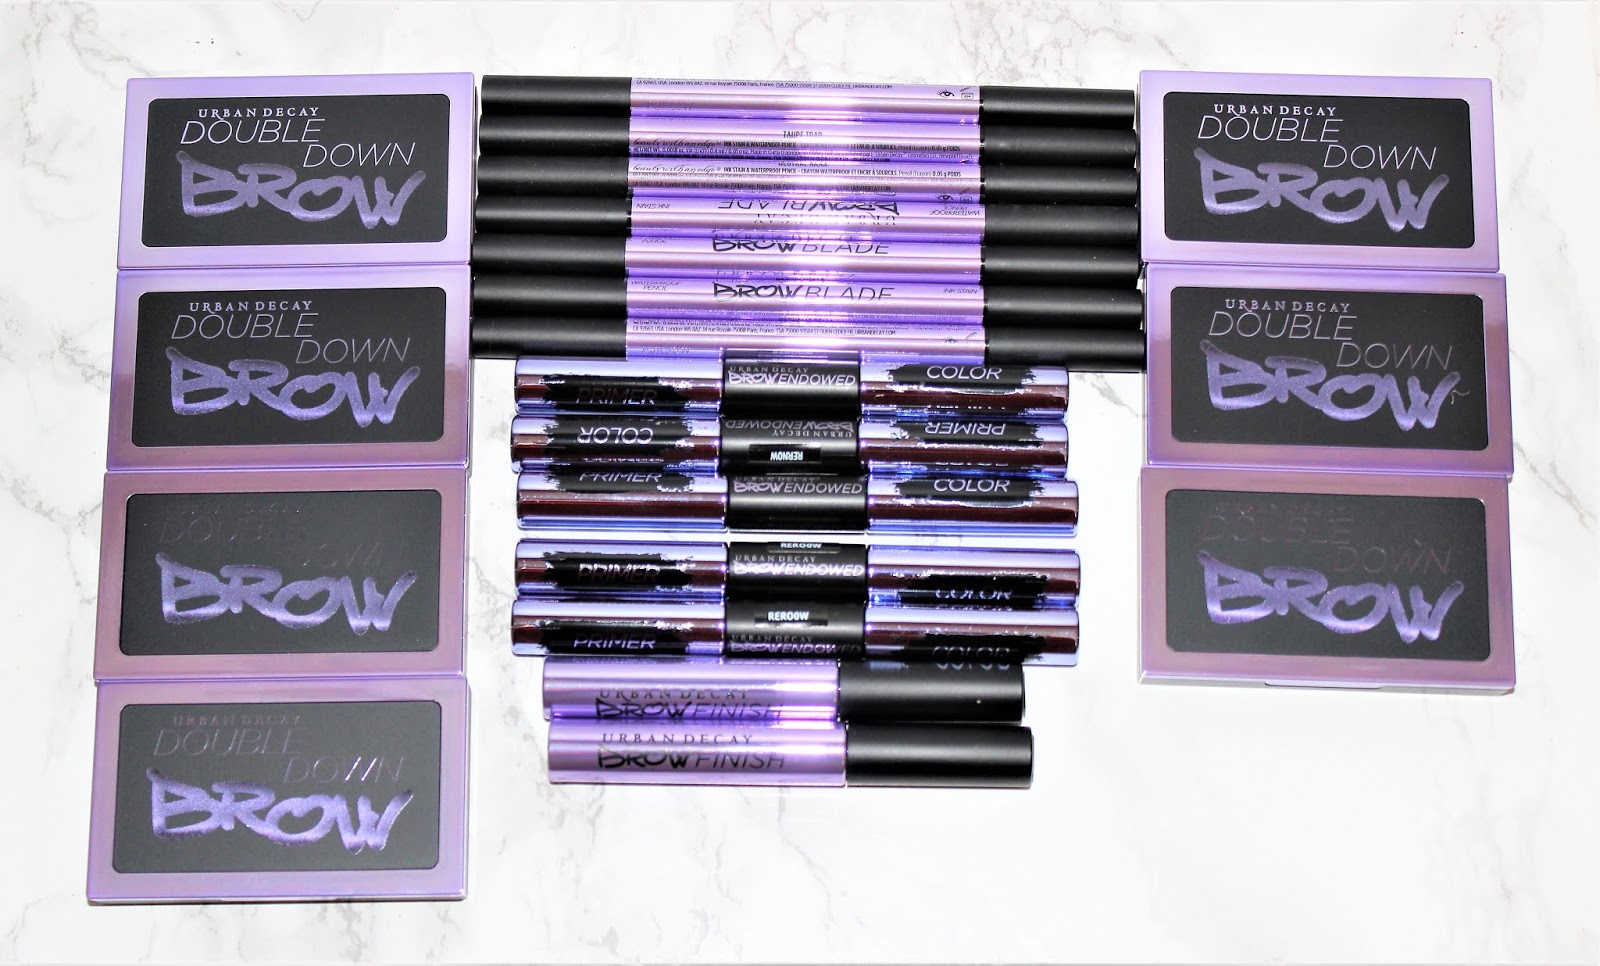 Urban Decay Street Style Brows Review